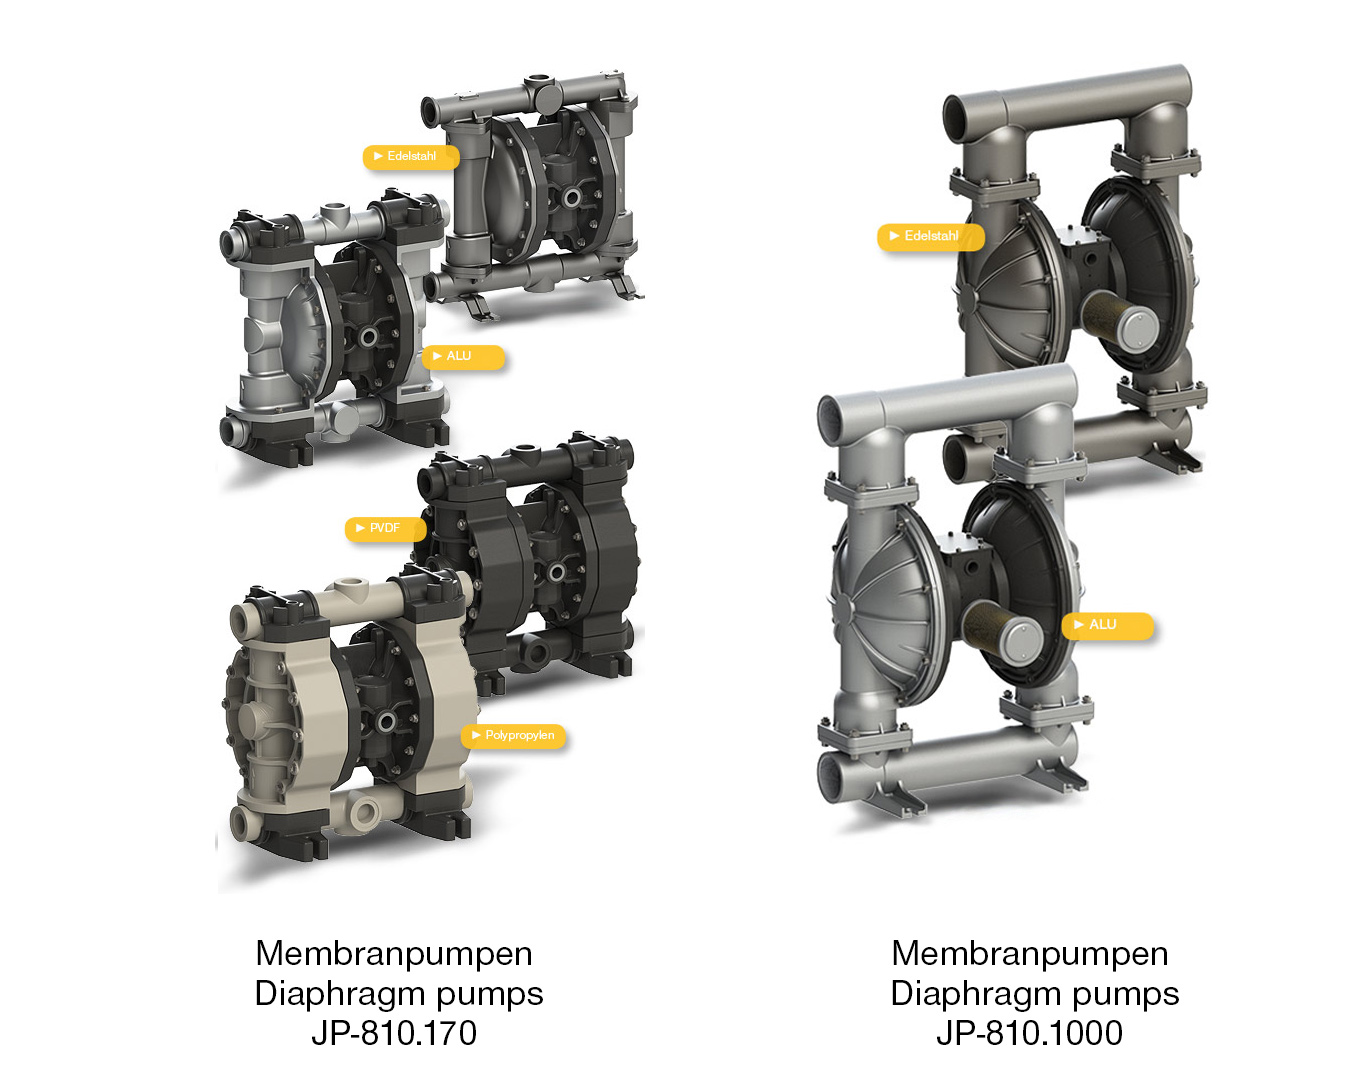 Product picture of Air operated diaphragm pumps